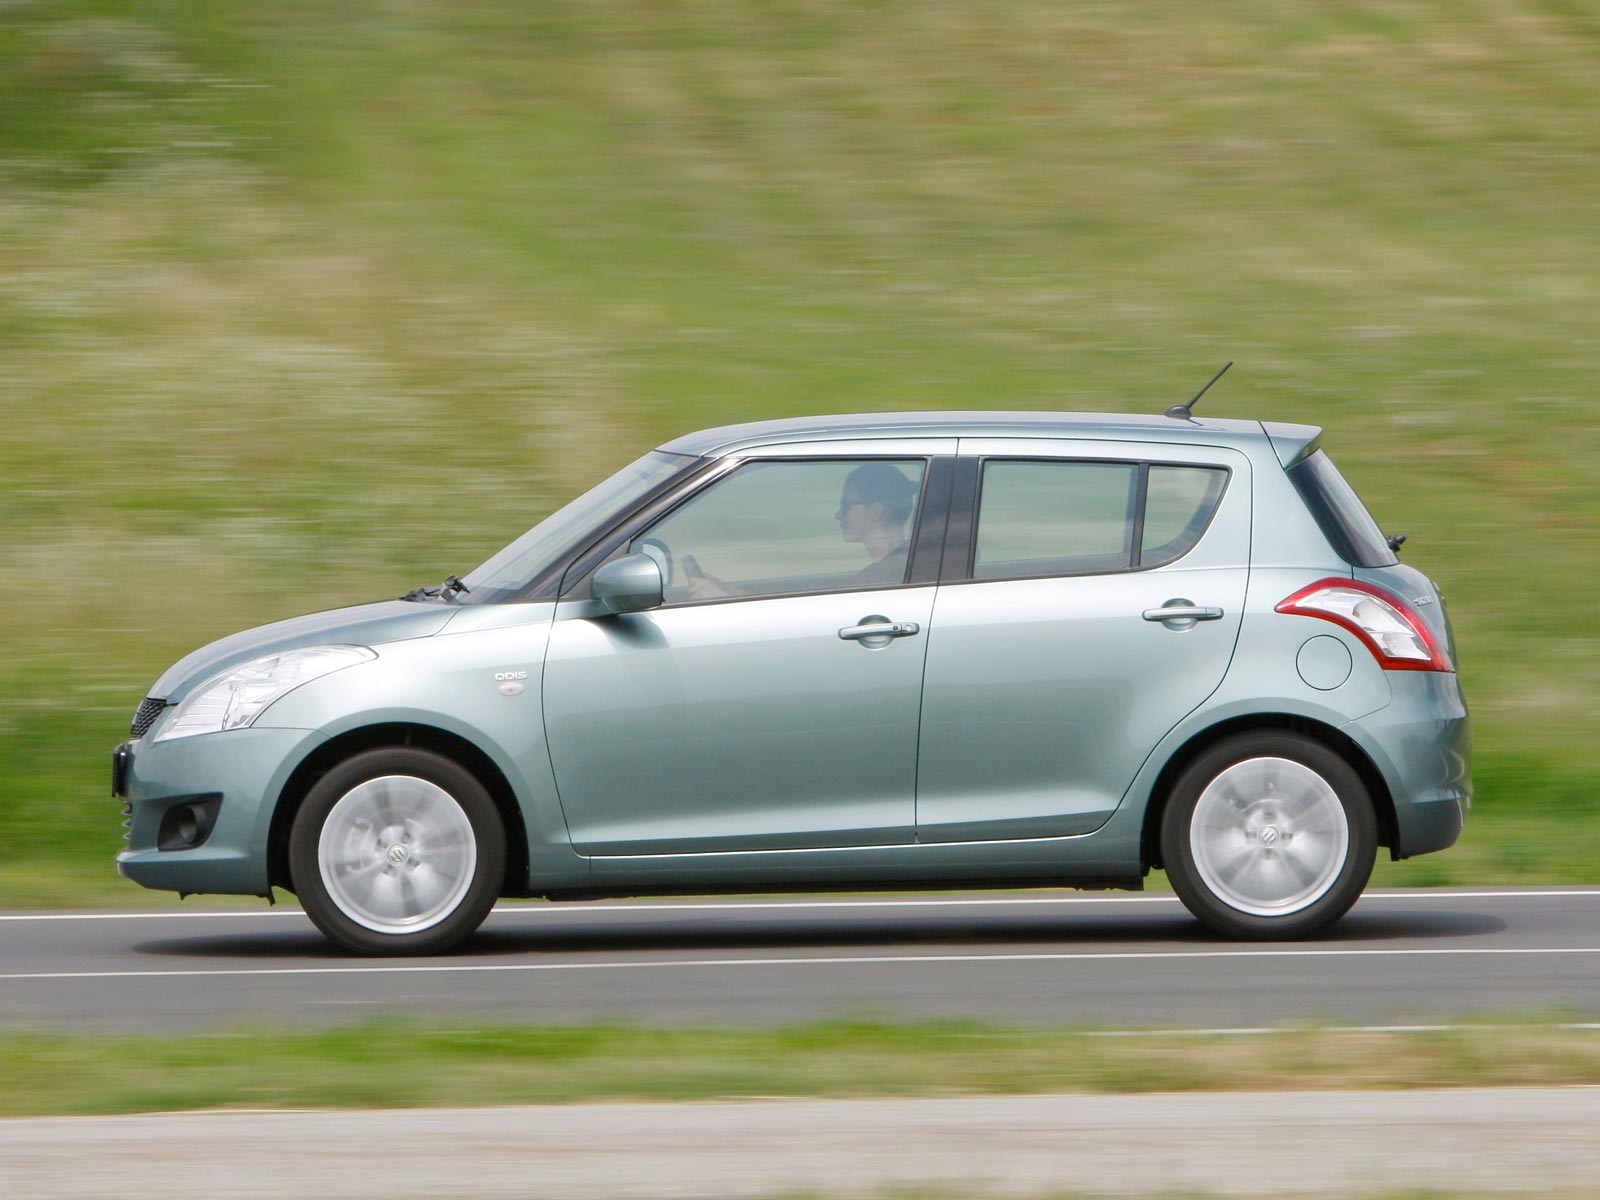 2019 Suzuki Swift photo - 3